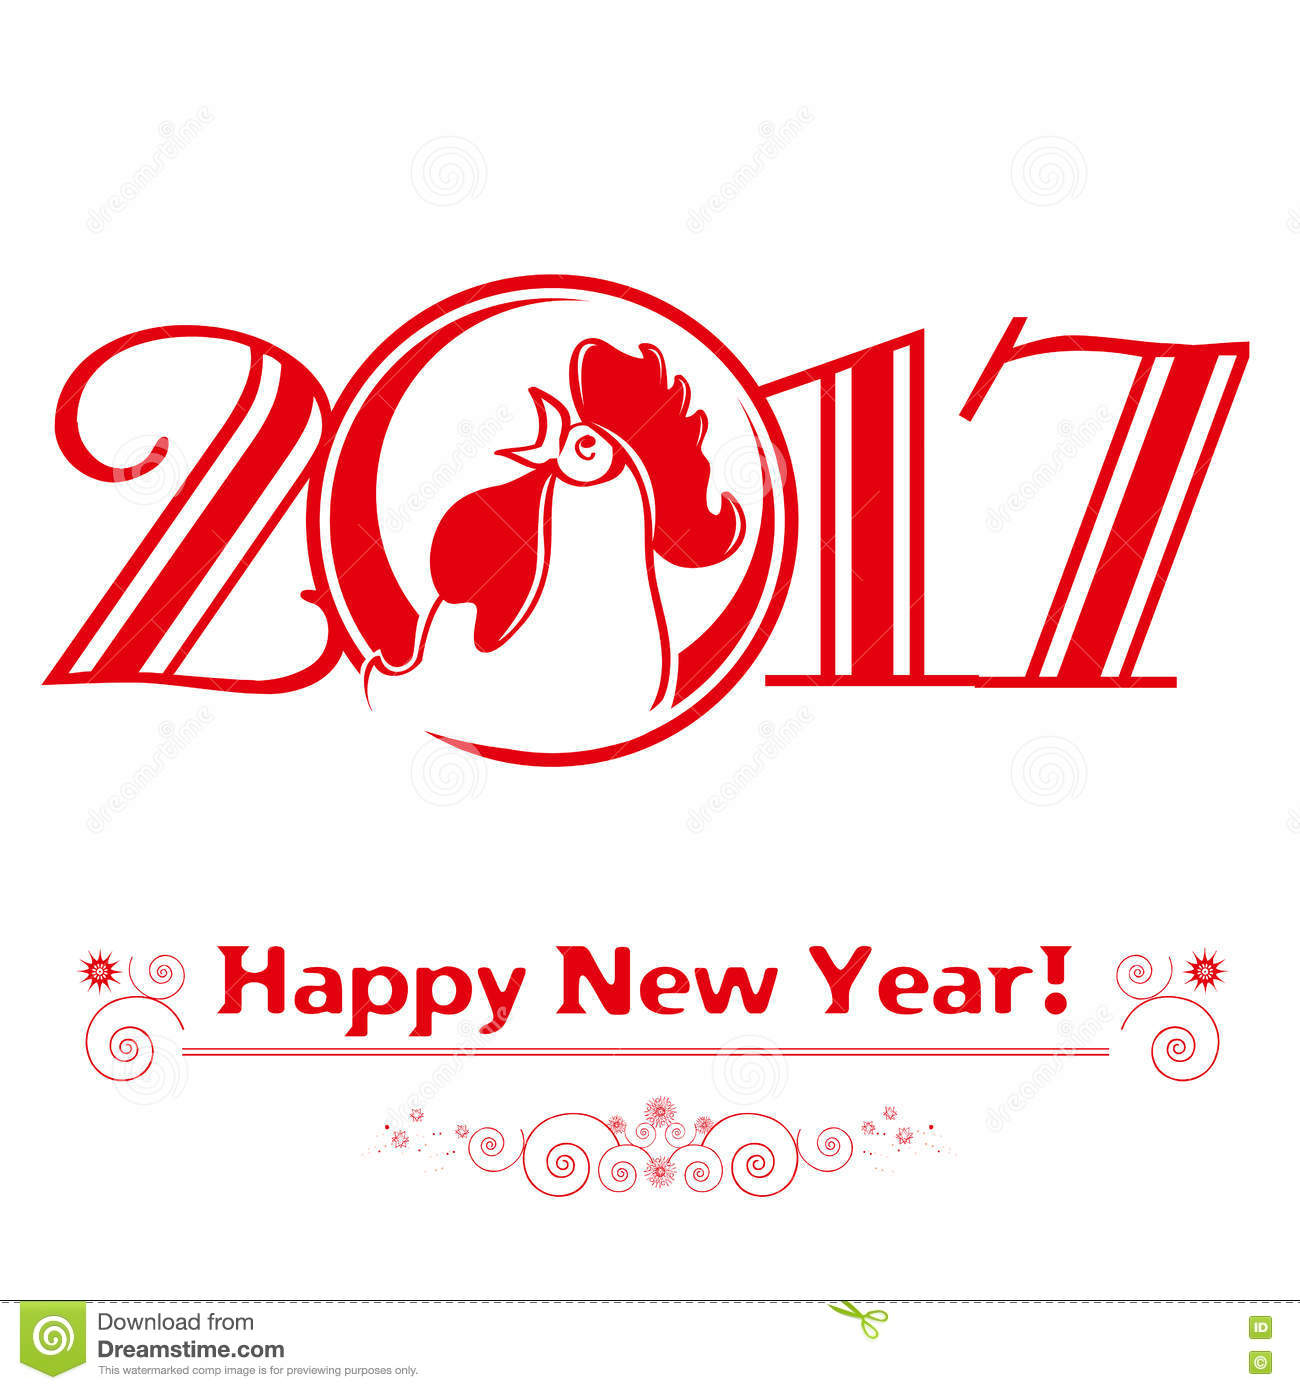 ... new-year-red-cock-symbol-merry-christmas-happy-new-year-greeting